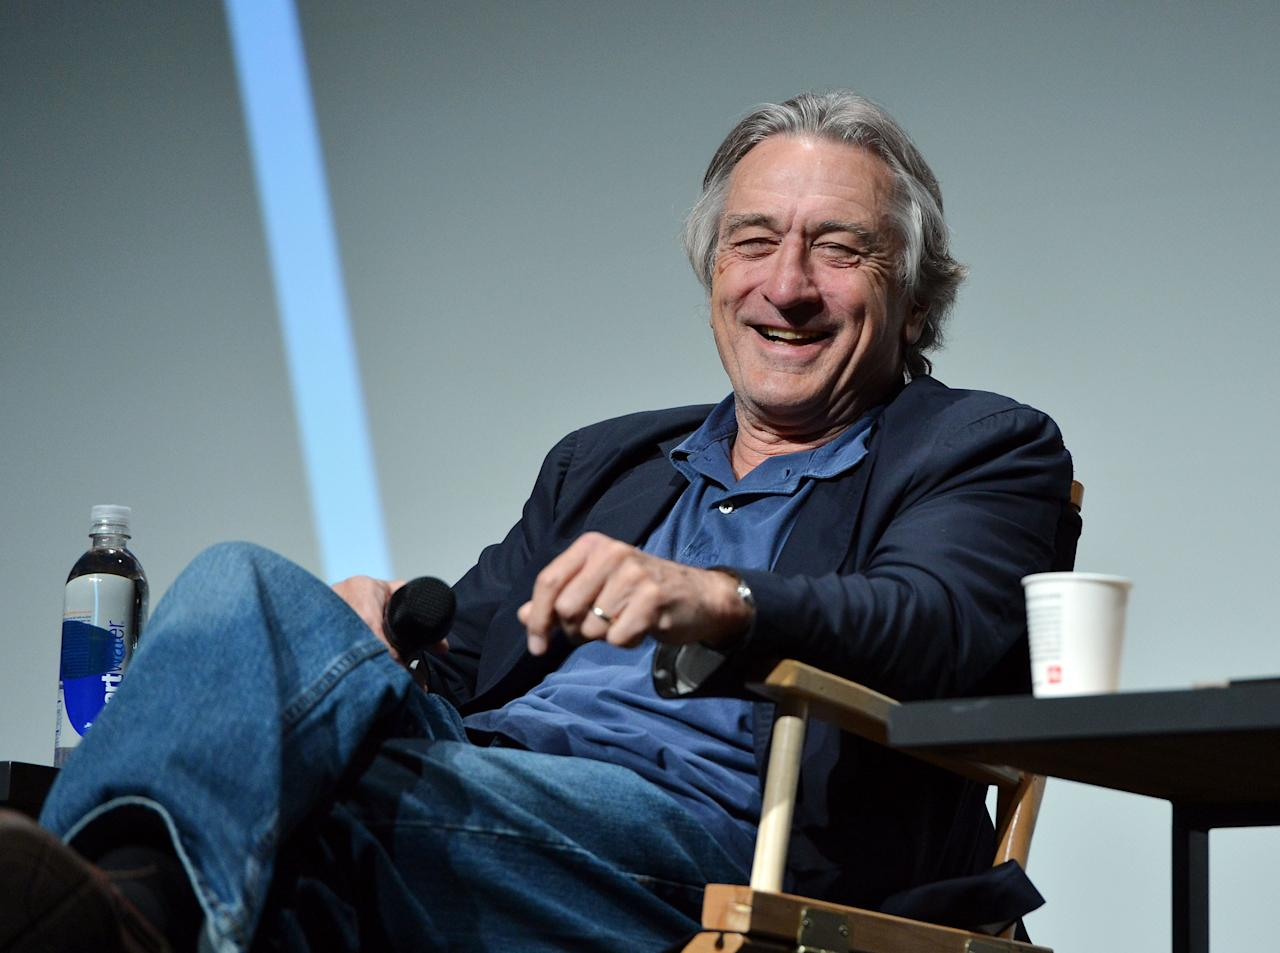 NEW YORK, NY - APRIL 19:  Robert De Niro, Co-Founder Tribeca Film Festival speaks during the Tribeca Talks Director's Series: 100 Years of Universal during the 2012 Tribeca Film Festival at the Borough of Manhattan Community College on April 19, 2012 in New York City.  (Photo by Slaven Vlasic/Getty Images)